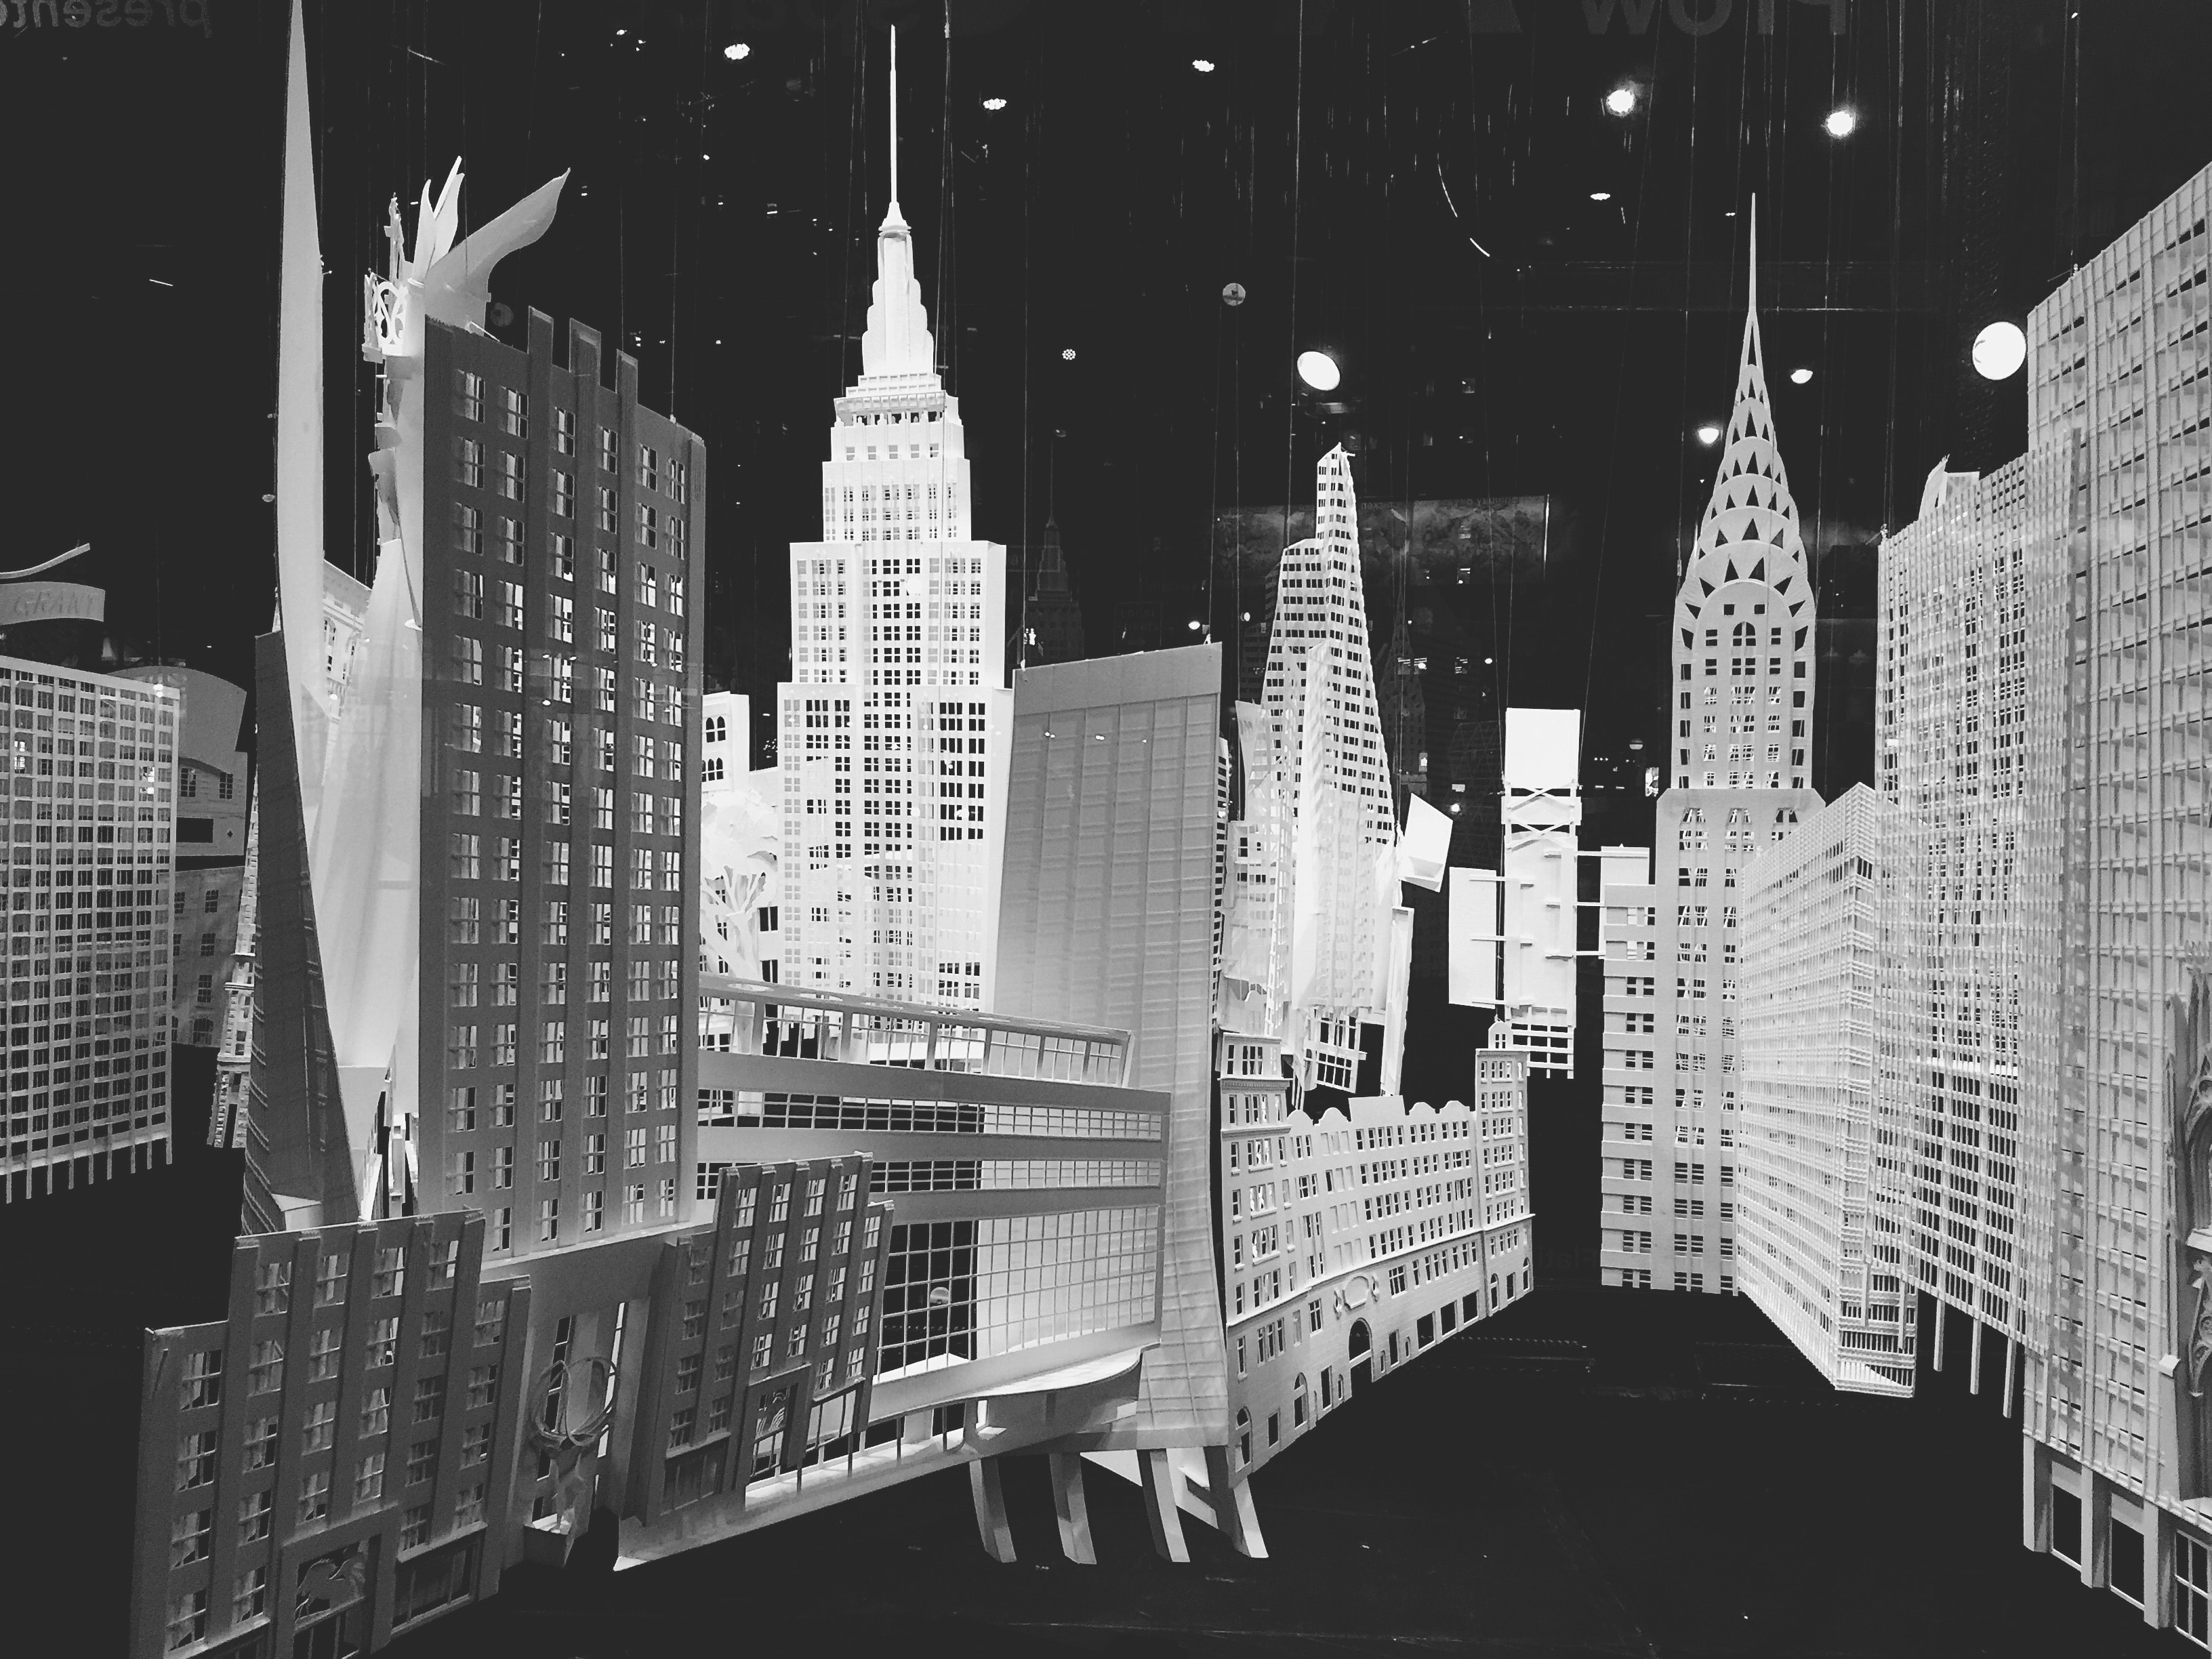 city buildings in grayscale photography